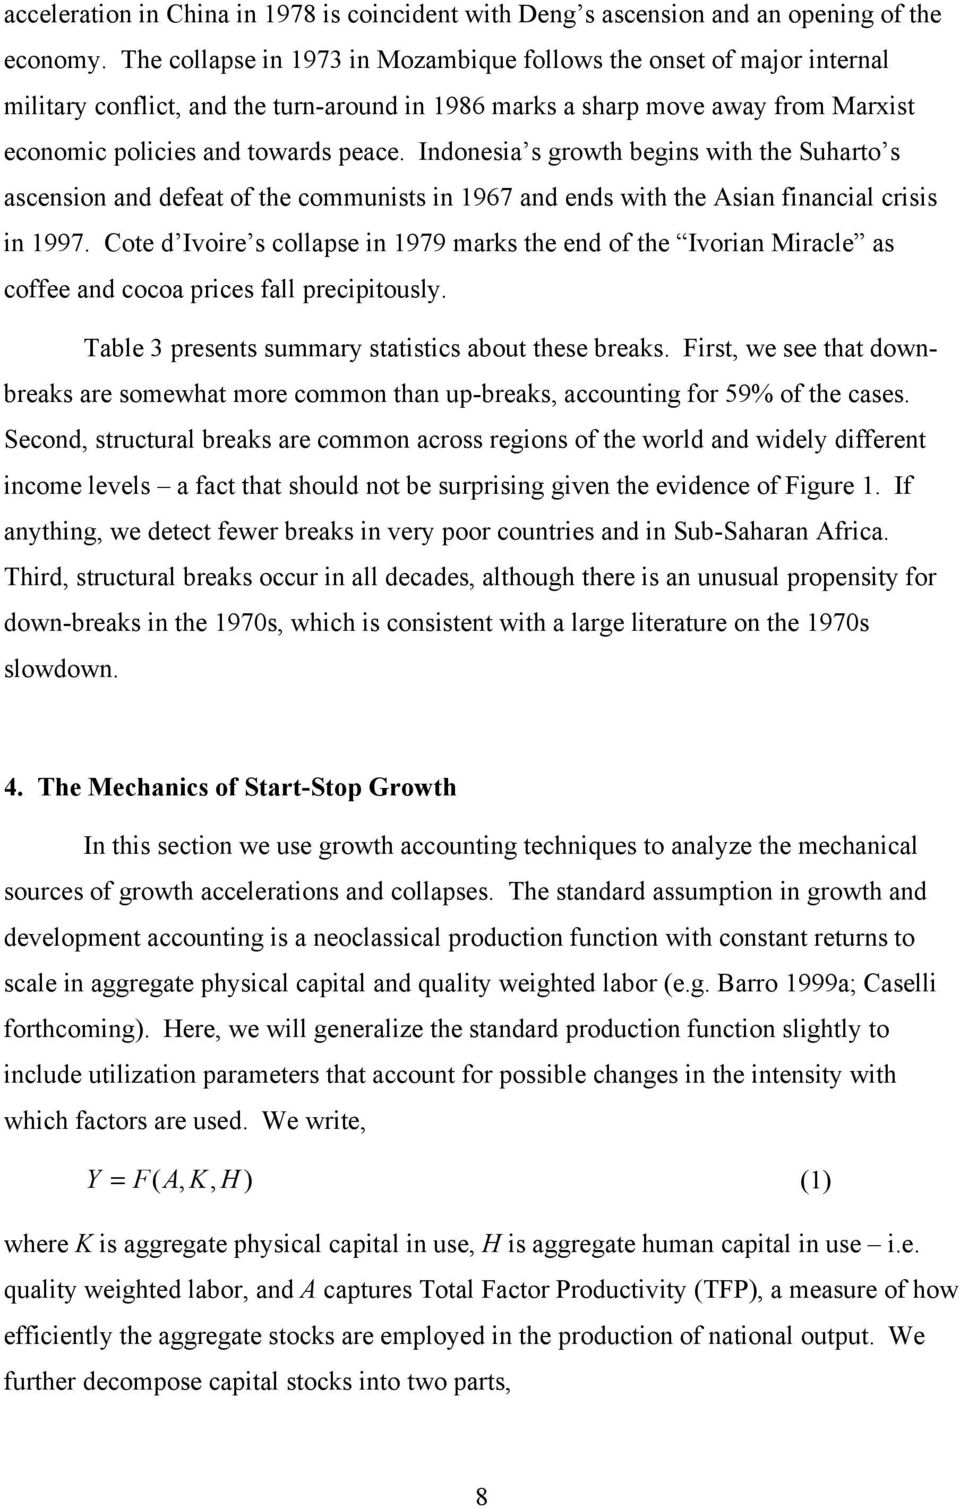 Indonesia s growth begins with the Suharto s ascension and defeat of the communists in 1967 and ends with the Asian financial crisis in 1997.